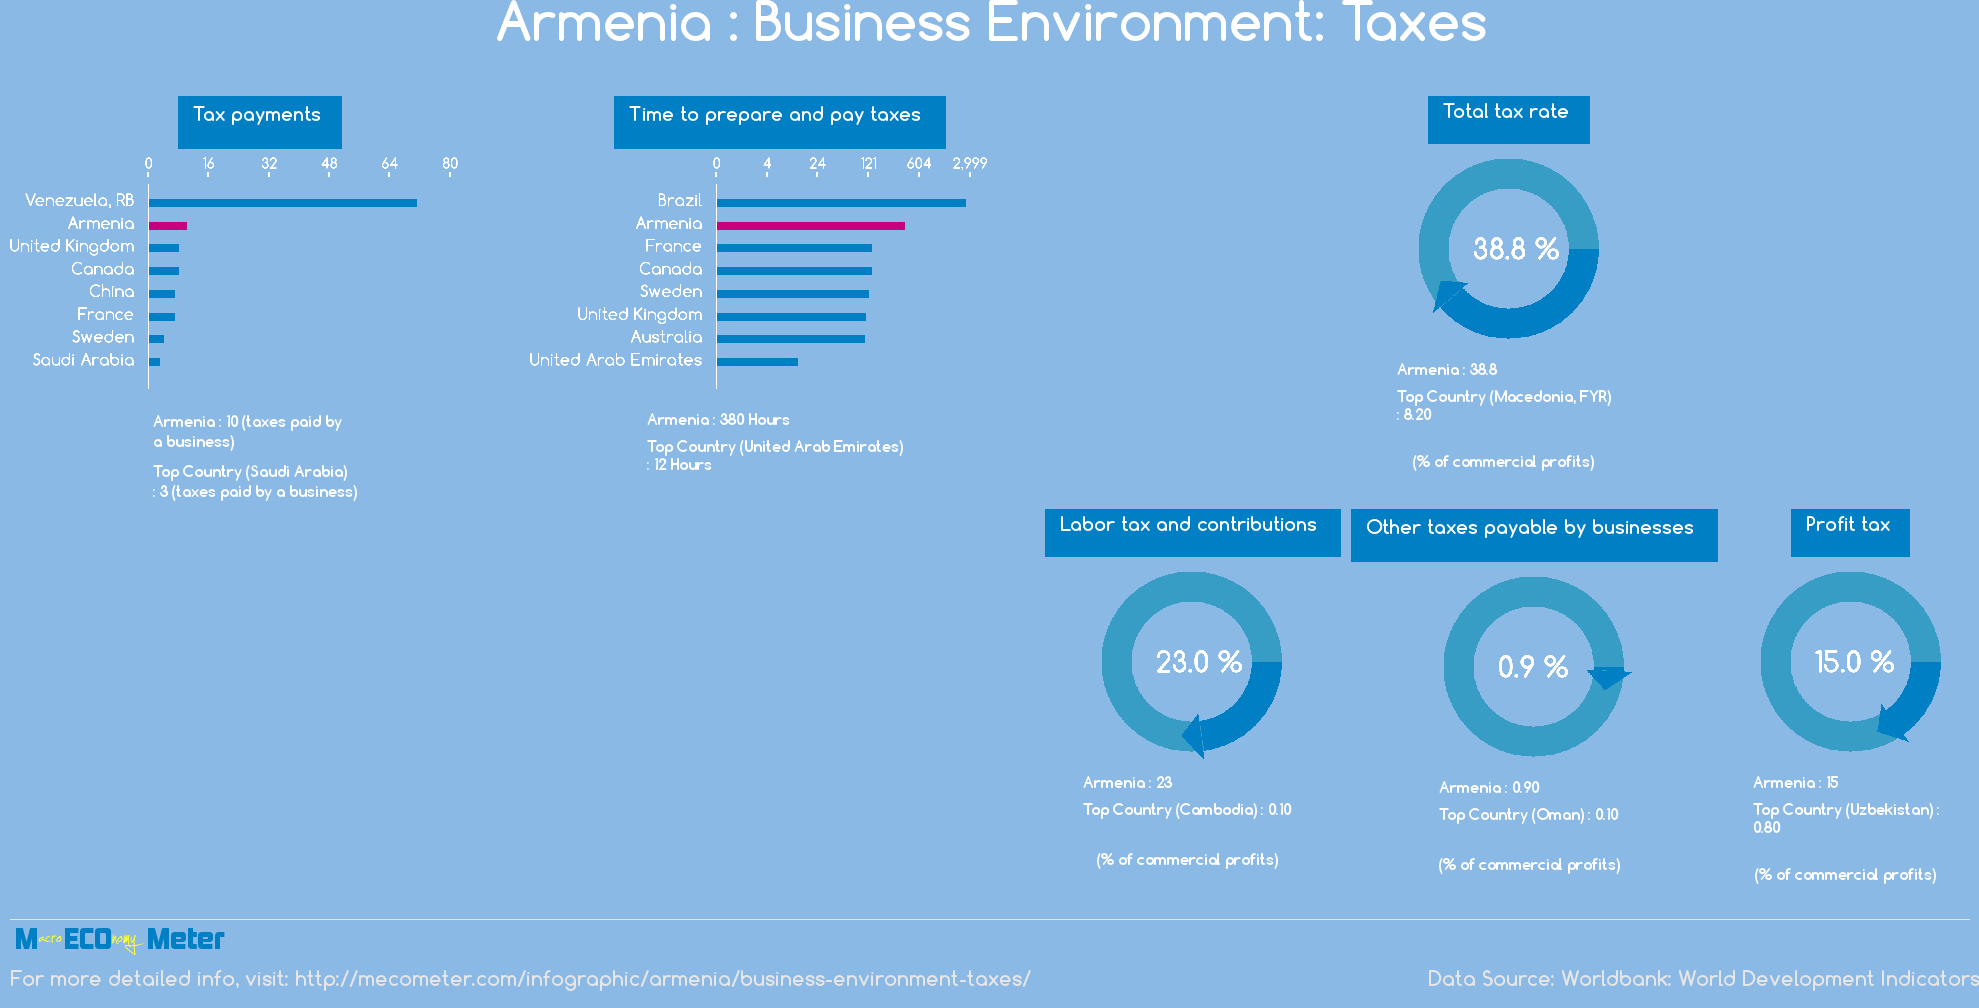 Armenia : Business Environment: Taxes